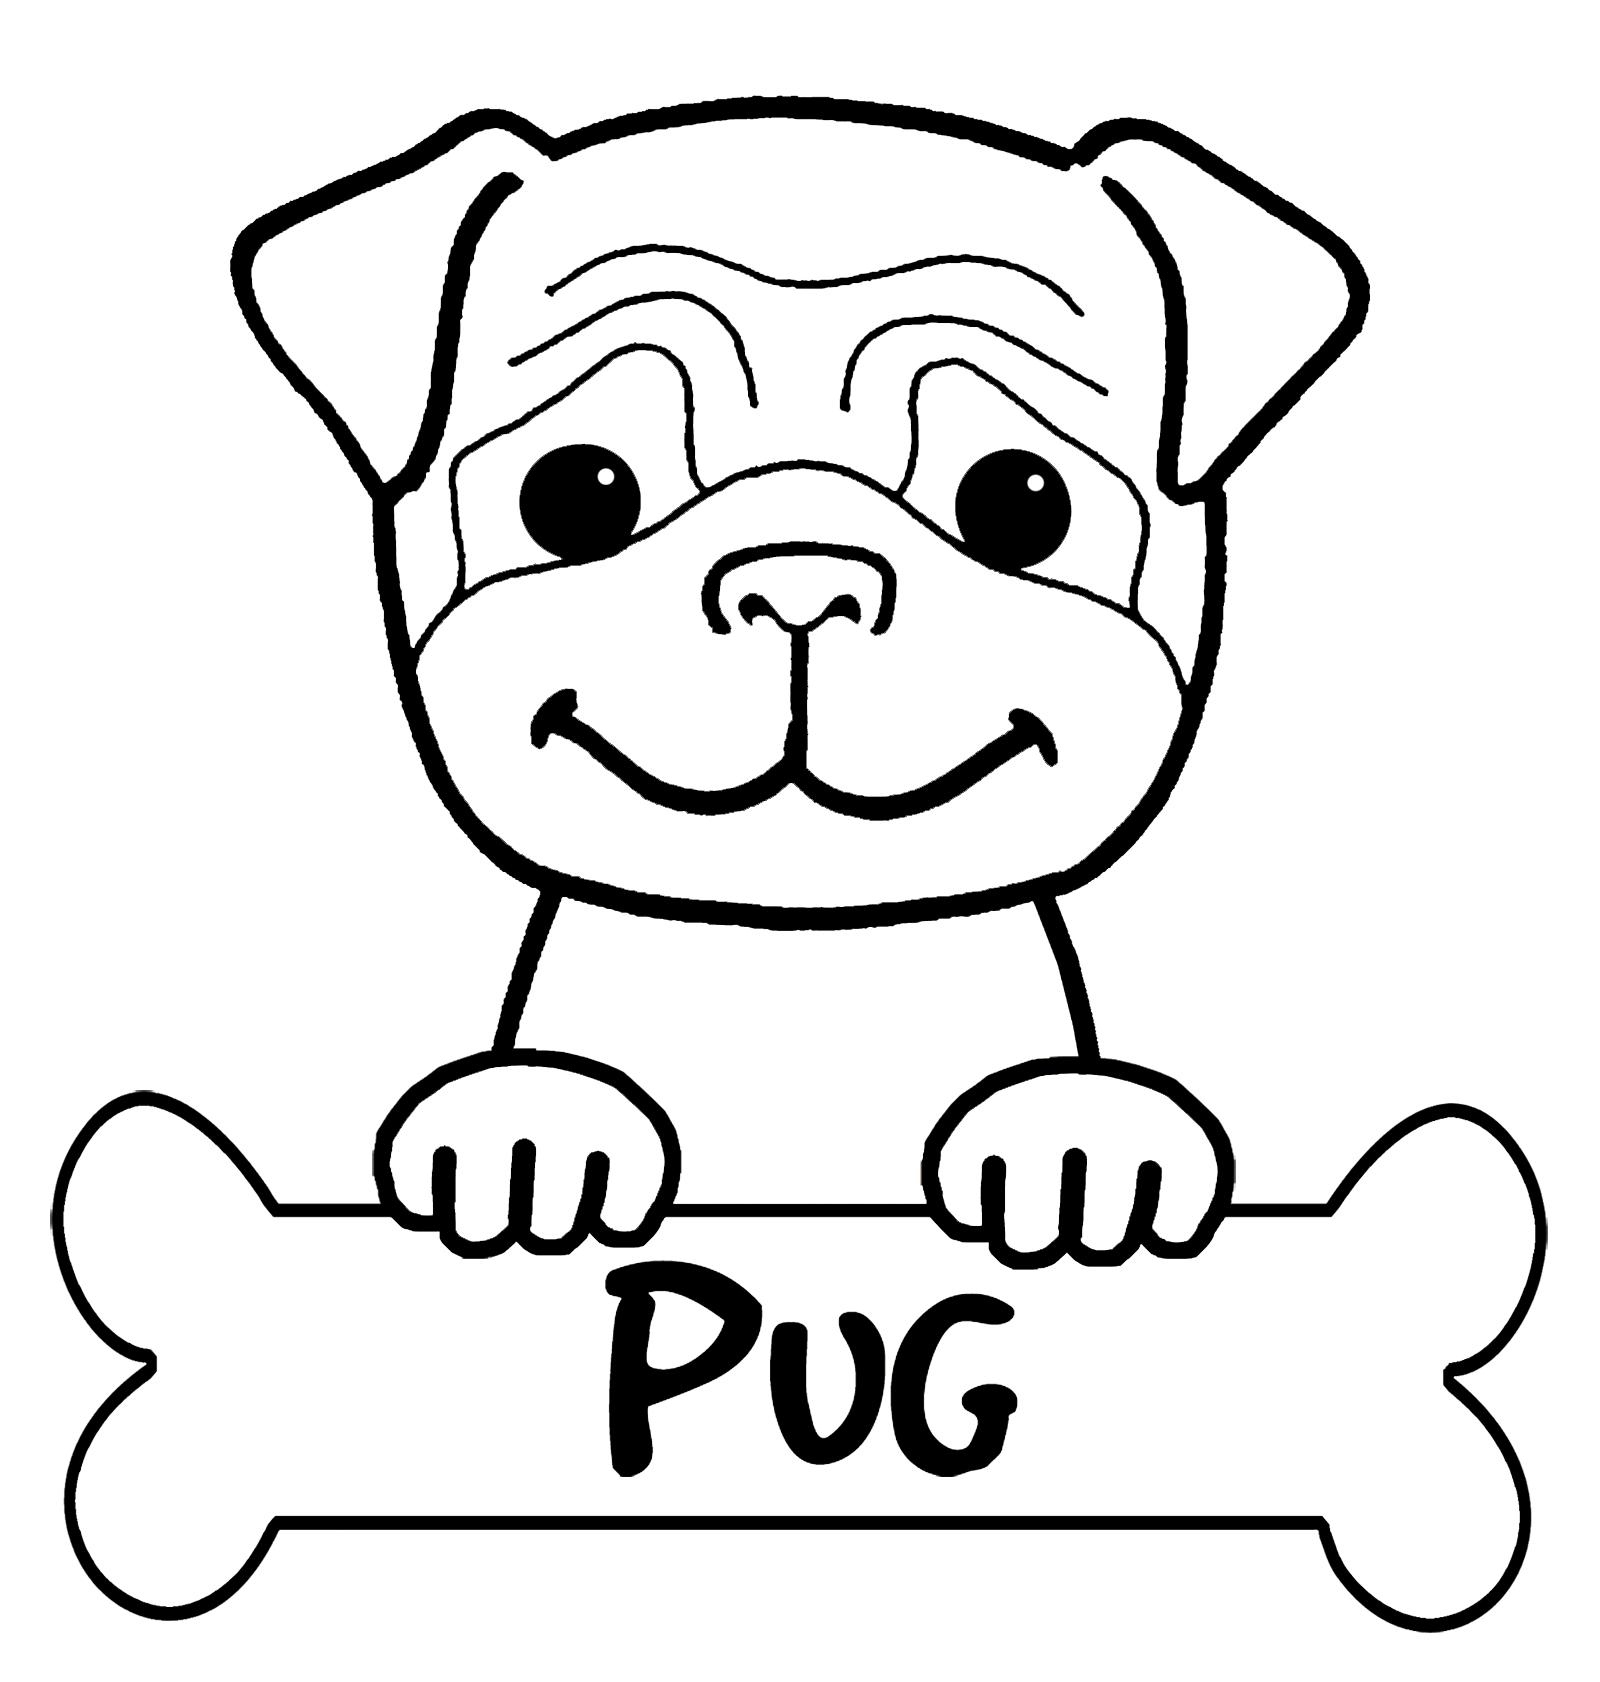 Cute Puppy Coloring Pages | Click on a coloring page below to print it. - Cute Puppies PNG Black And White